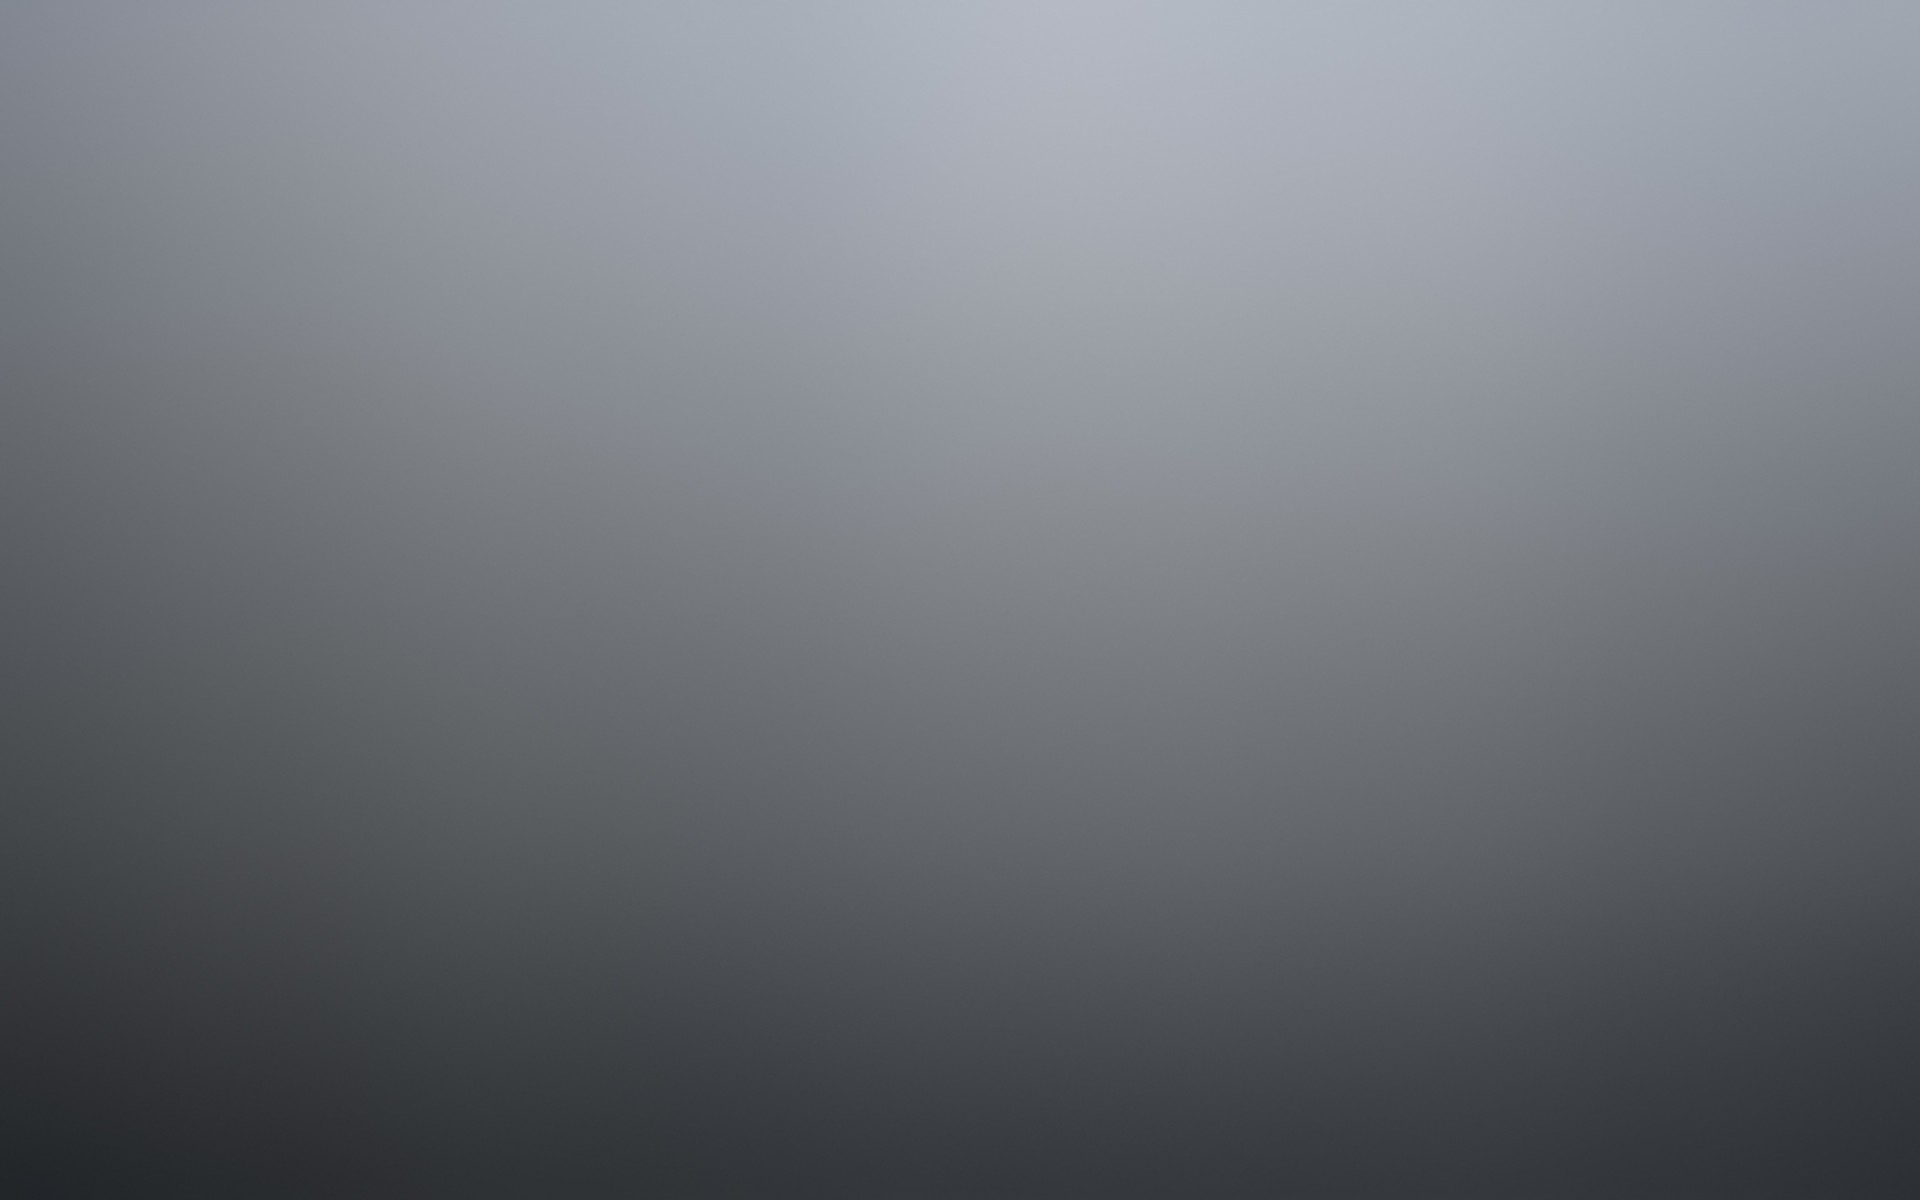 Gradient Grey Wallpaper for Desktop 1920x1200